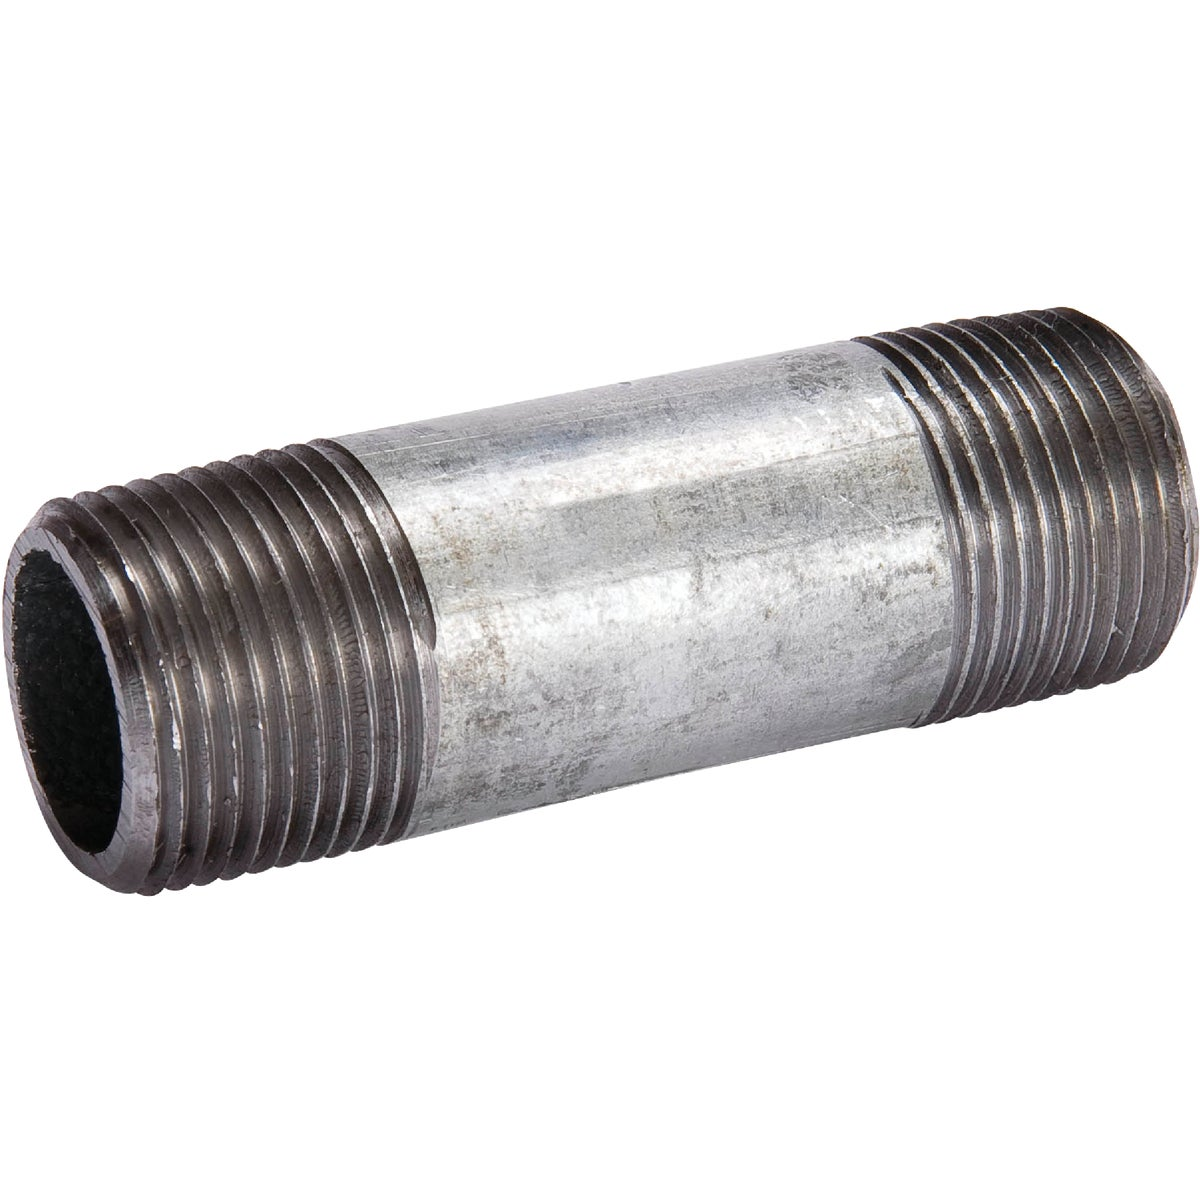 3/8X3-1/2 GALV NIPPLE - 10305 by Southland Pipe Nippl